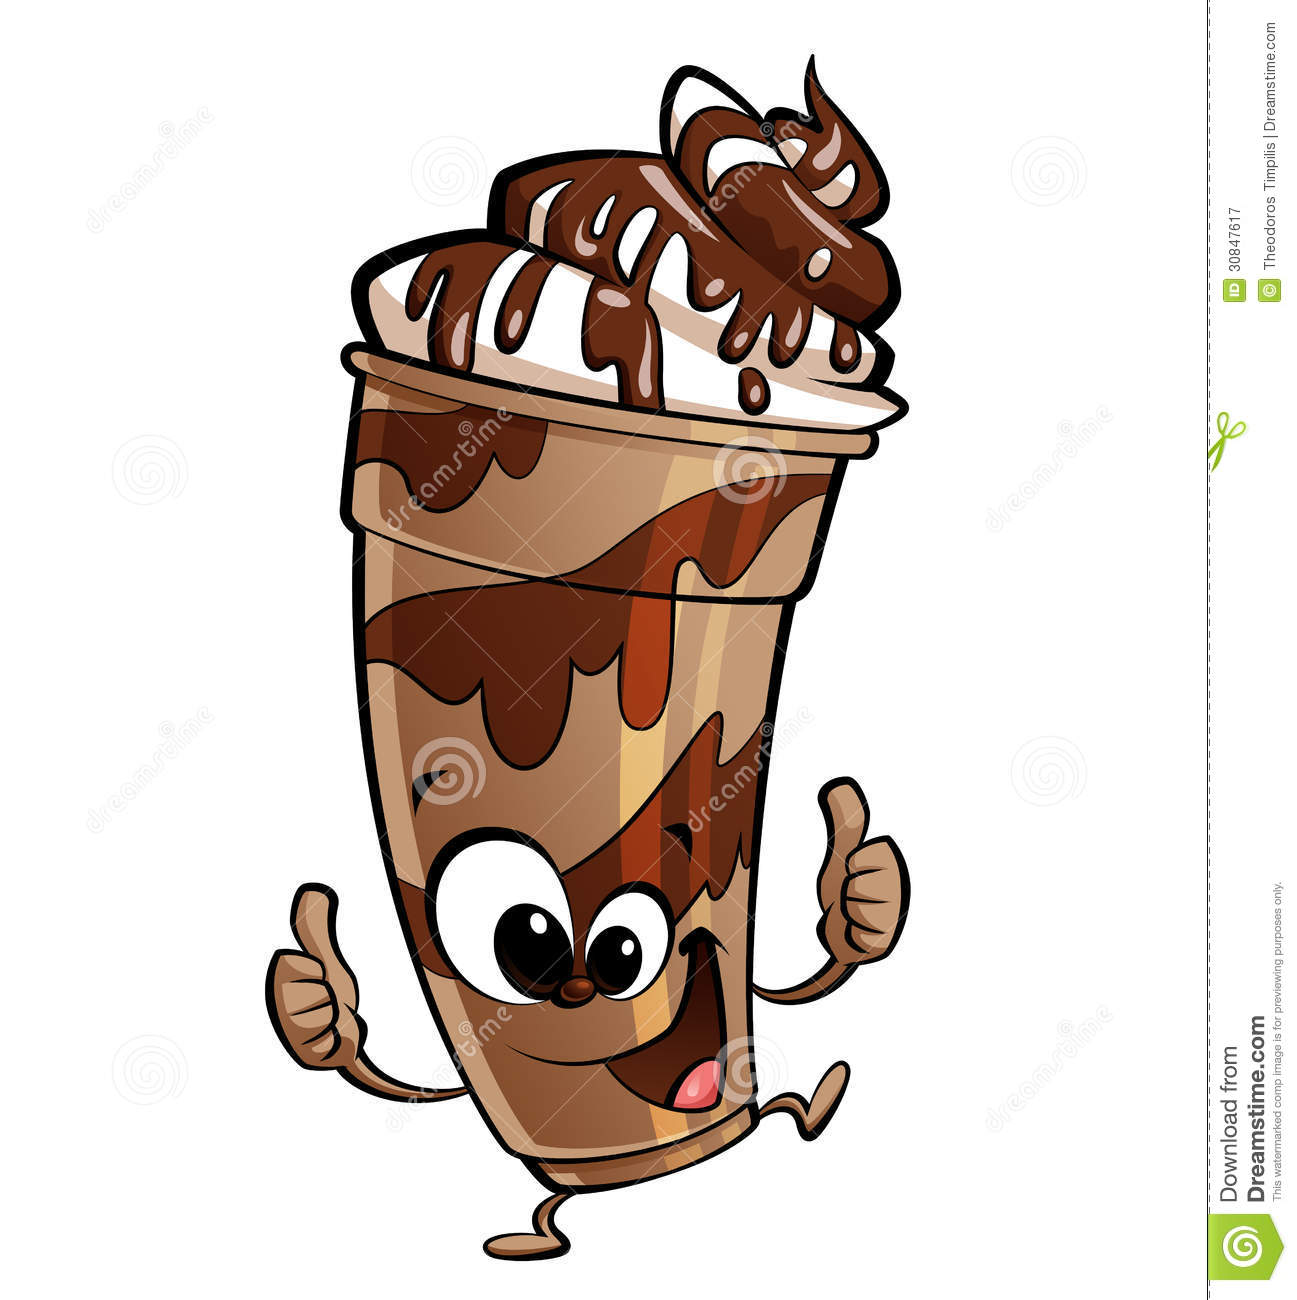 Happy Cartoon Chocolate Milkshake Making A Thumbs Up Gesture Royalty ...